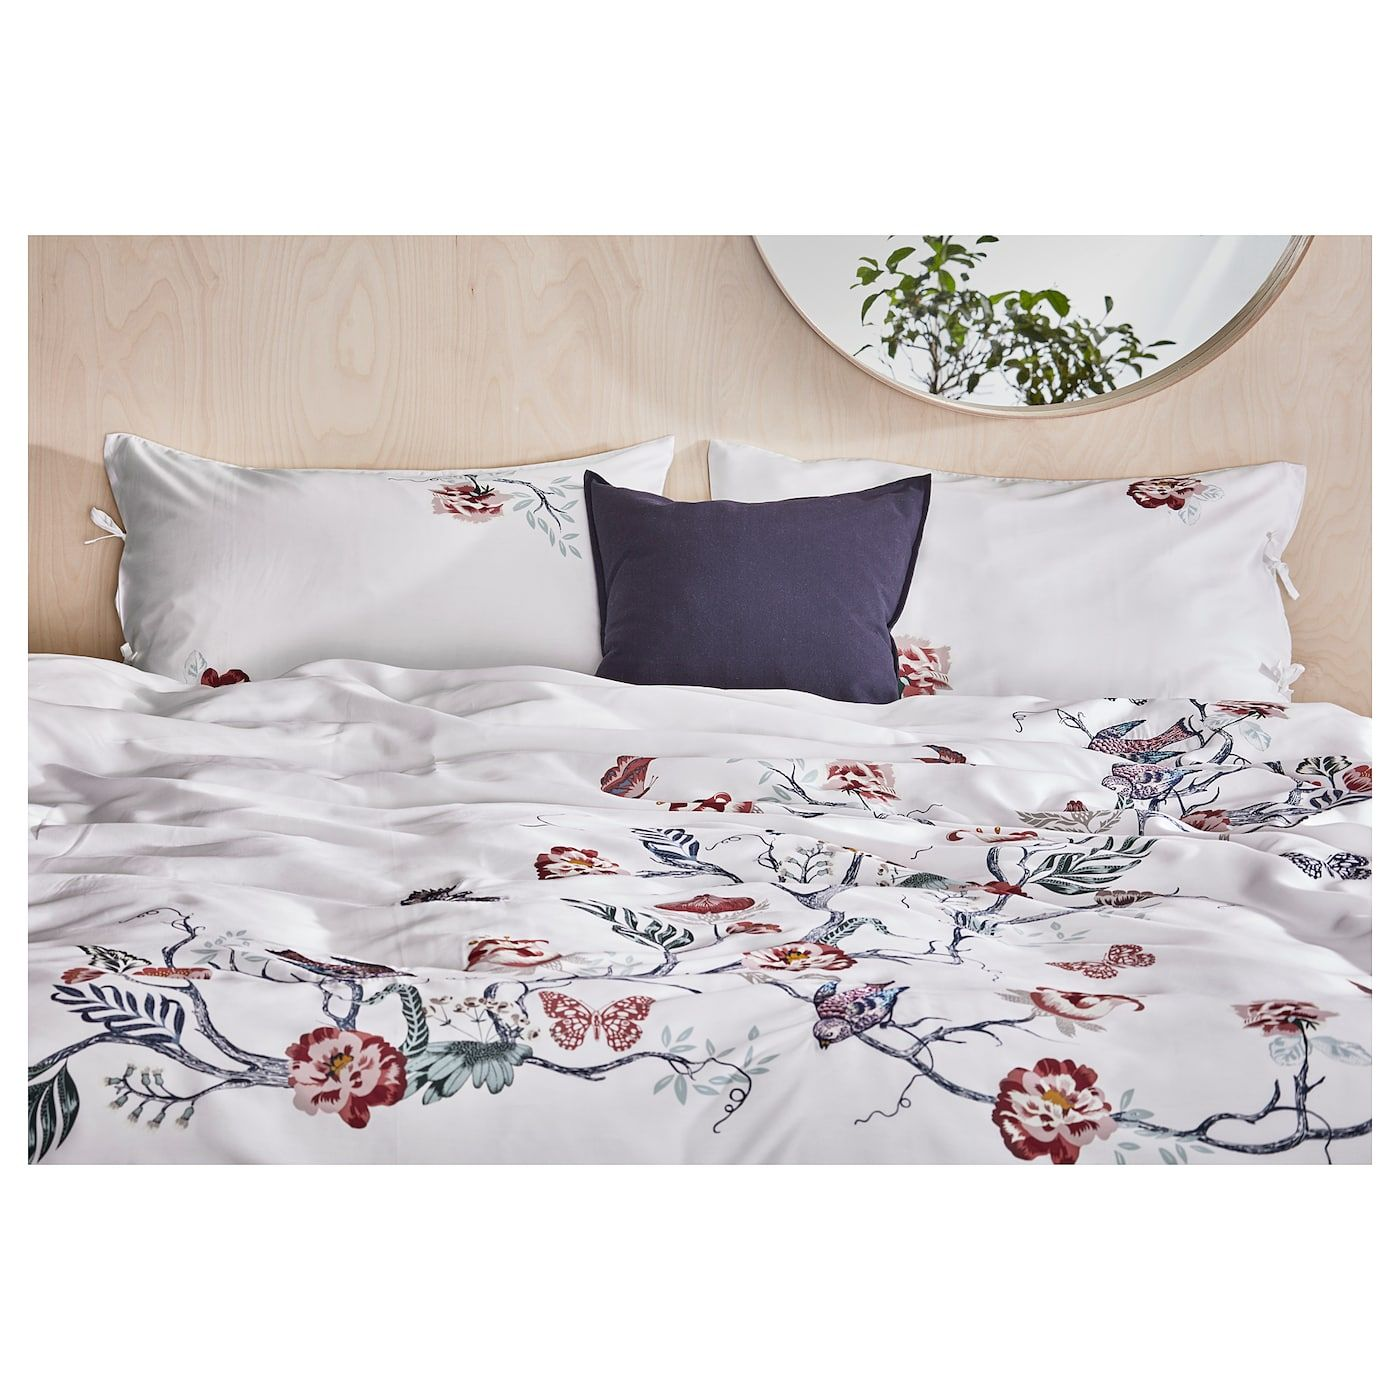 JÄTTELILJA Duvet cover and pillowcase(s) white, floral